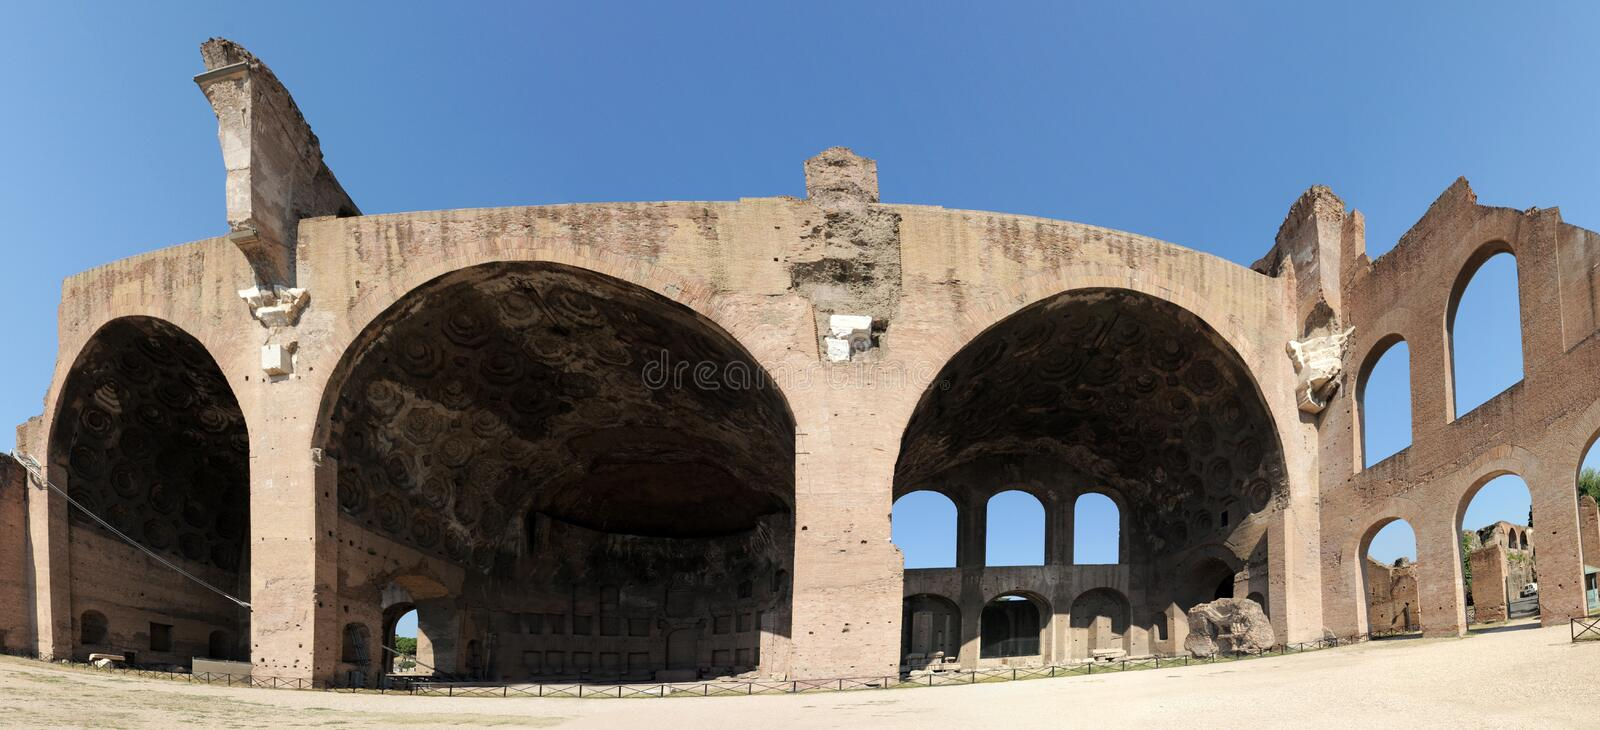 Download Basilica of Maxentius stock photo. Image of tourism, famous - 21411852